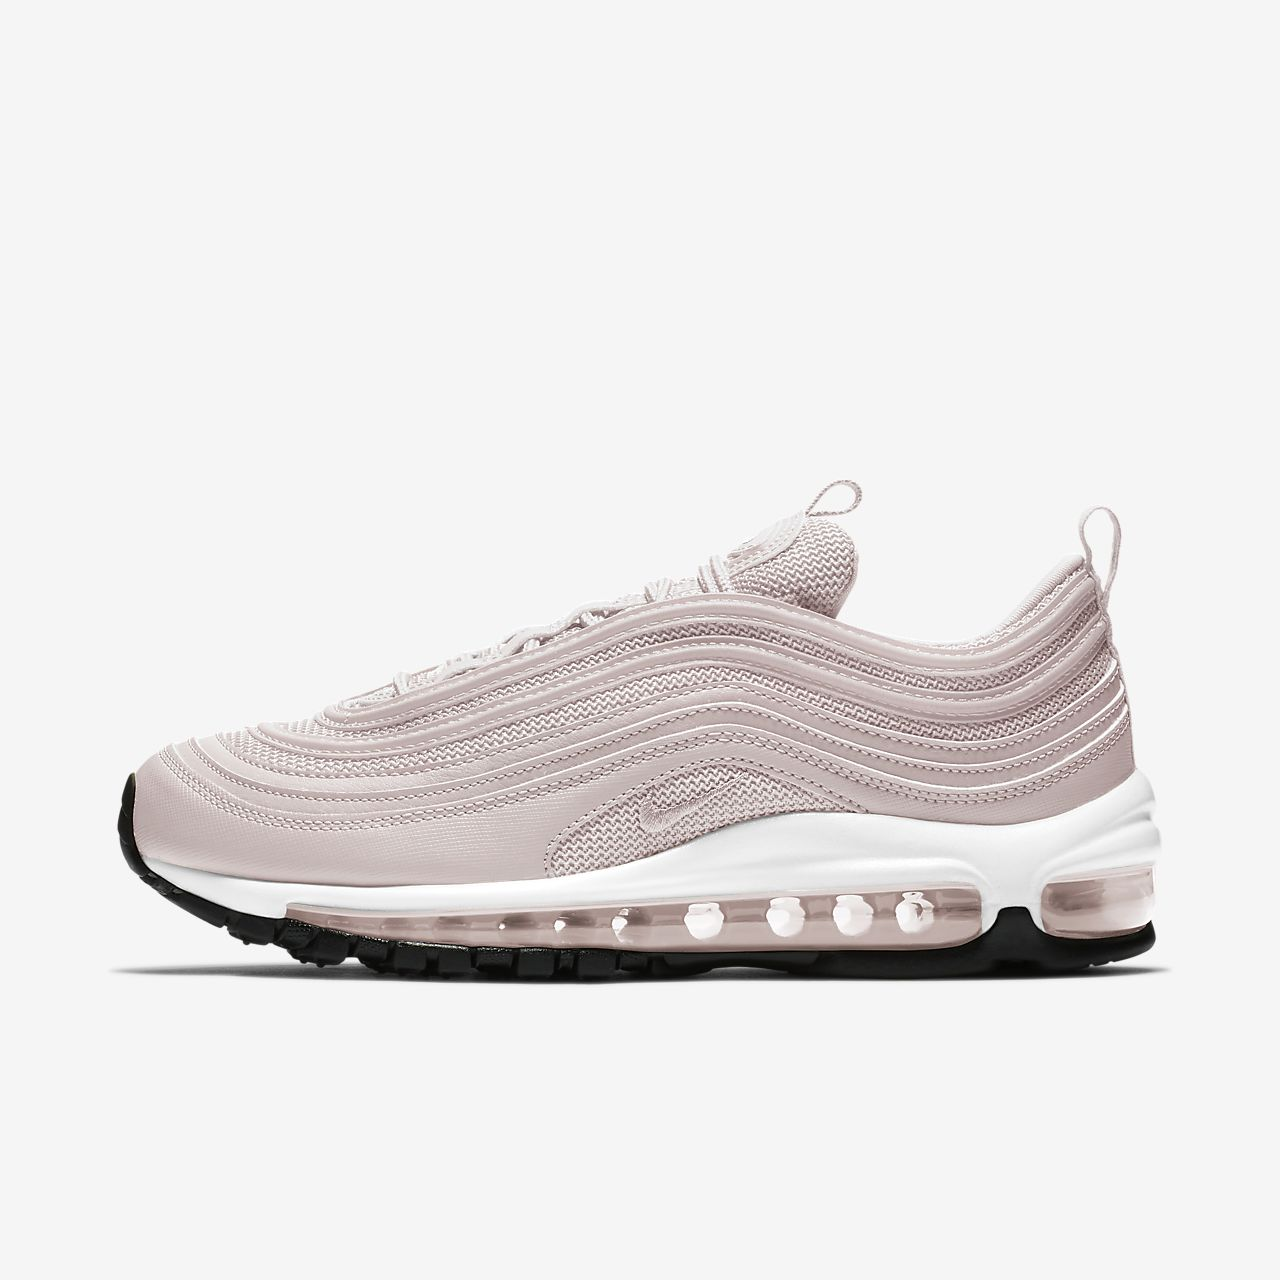 newest 95c12 6c01a Nike Air Max 97 Women's Shoe